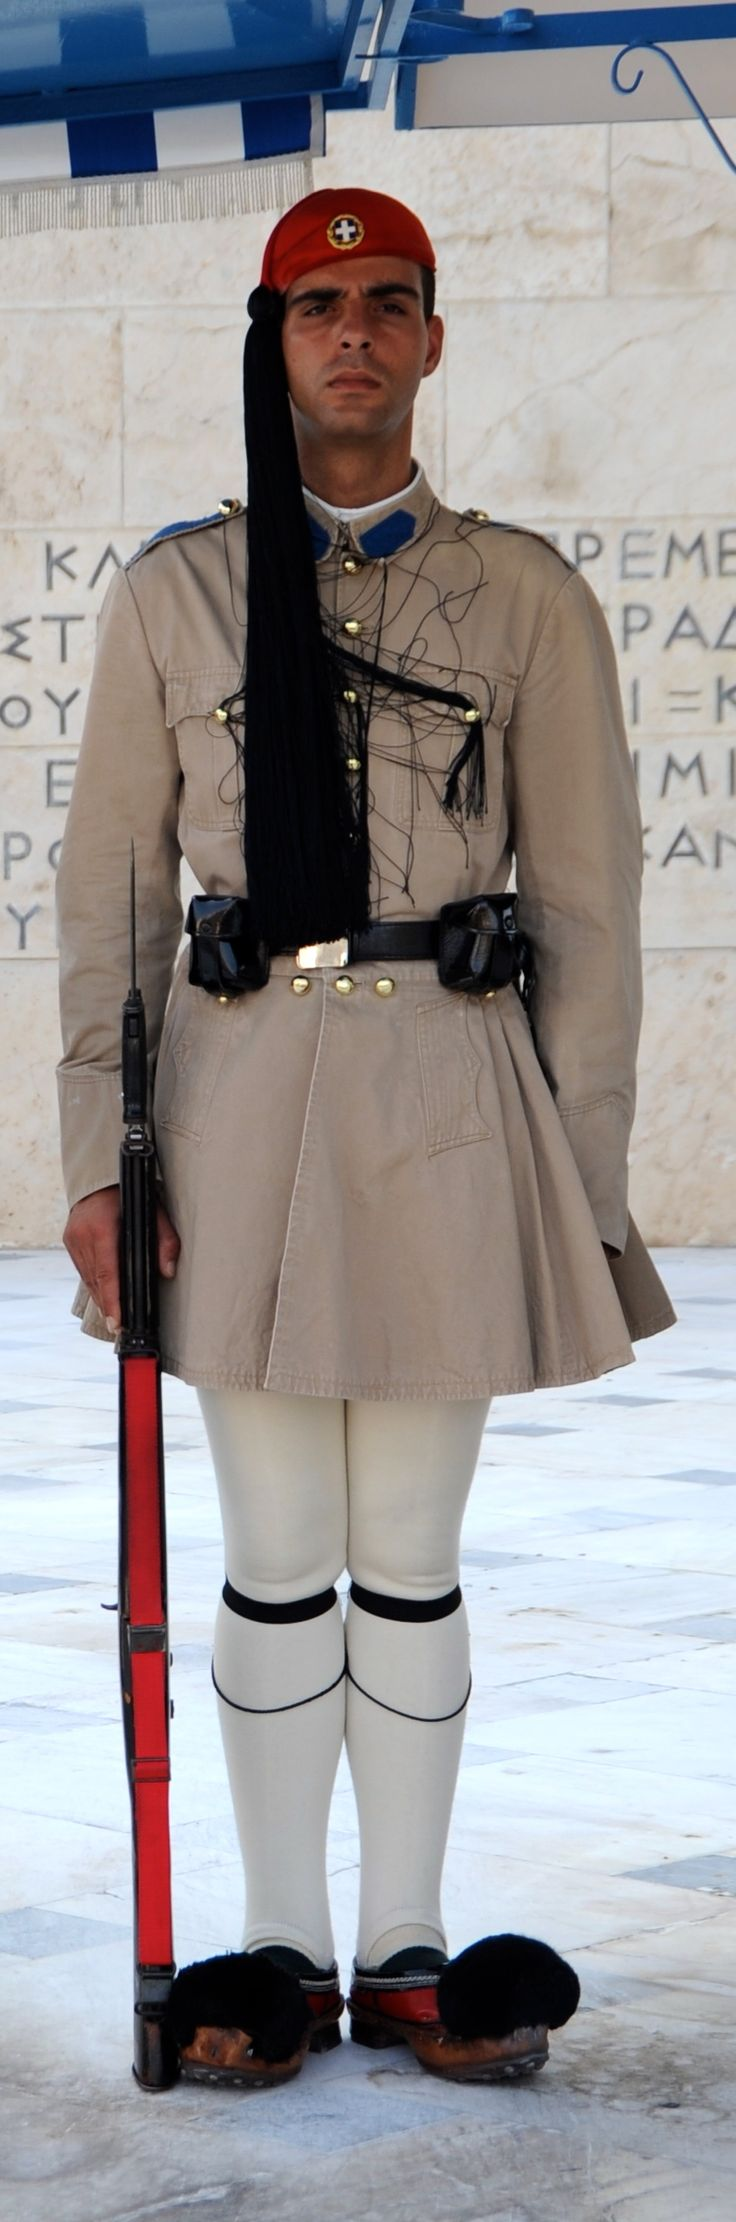 Greek Evzone guard in front of the Syntagma Square, Athens